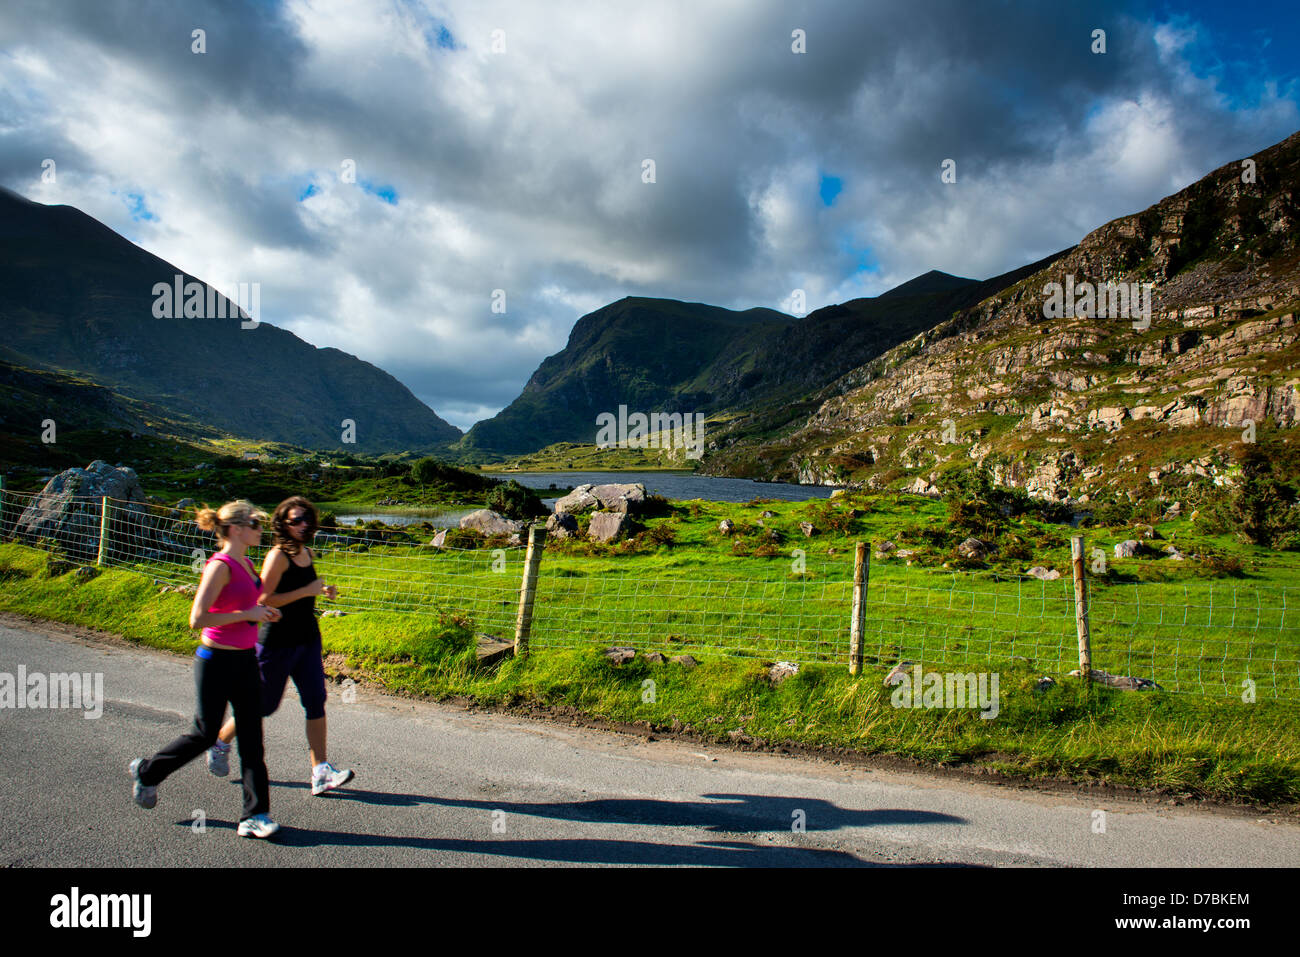 Girls jogging,Gap of Dunloe, Macgillicuddy's reeks, Co. Kerry, Ireland, Killarney National Park - Stock Image